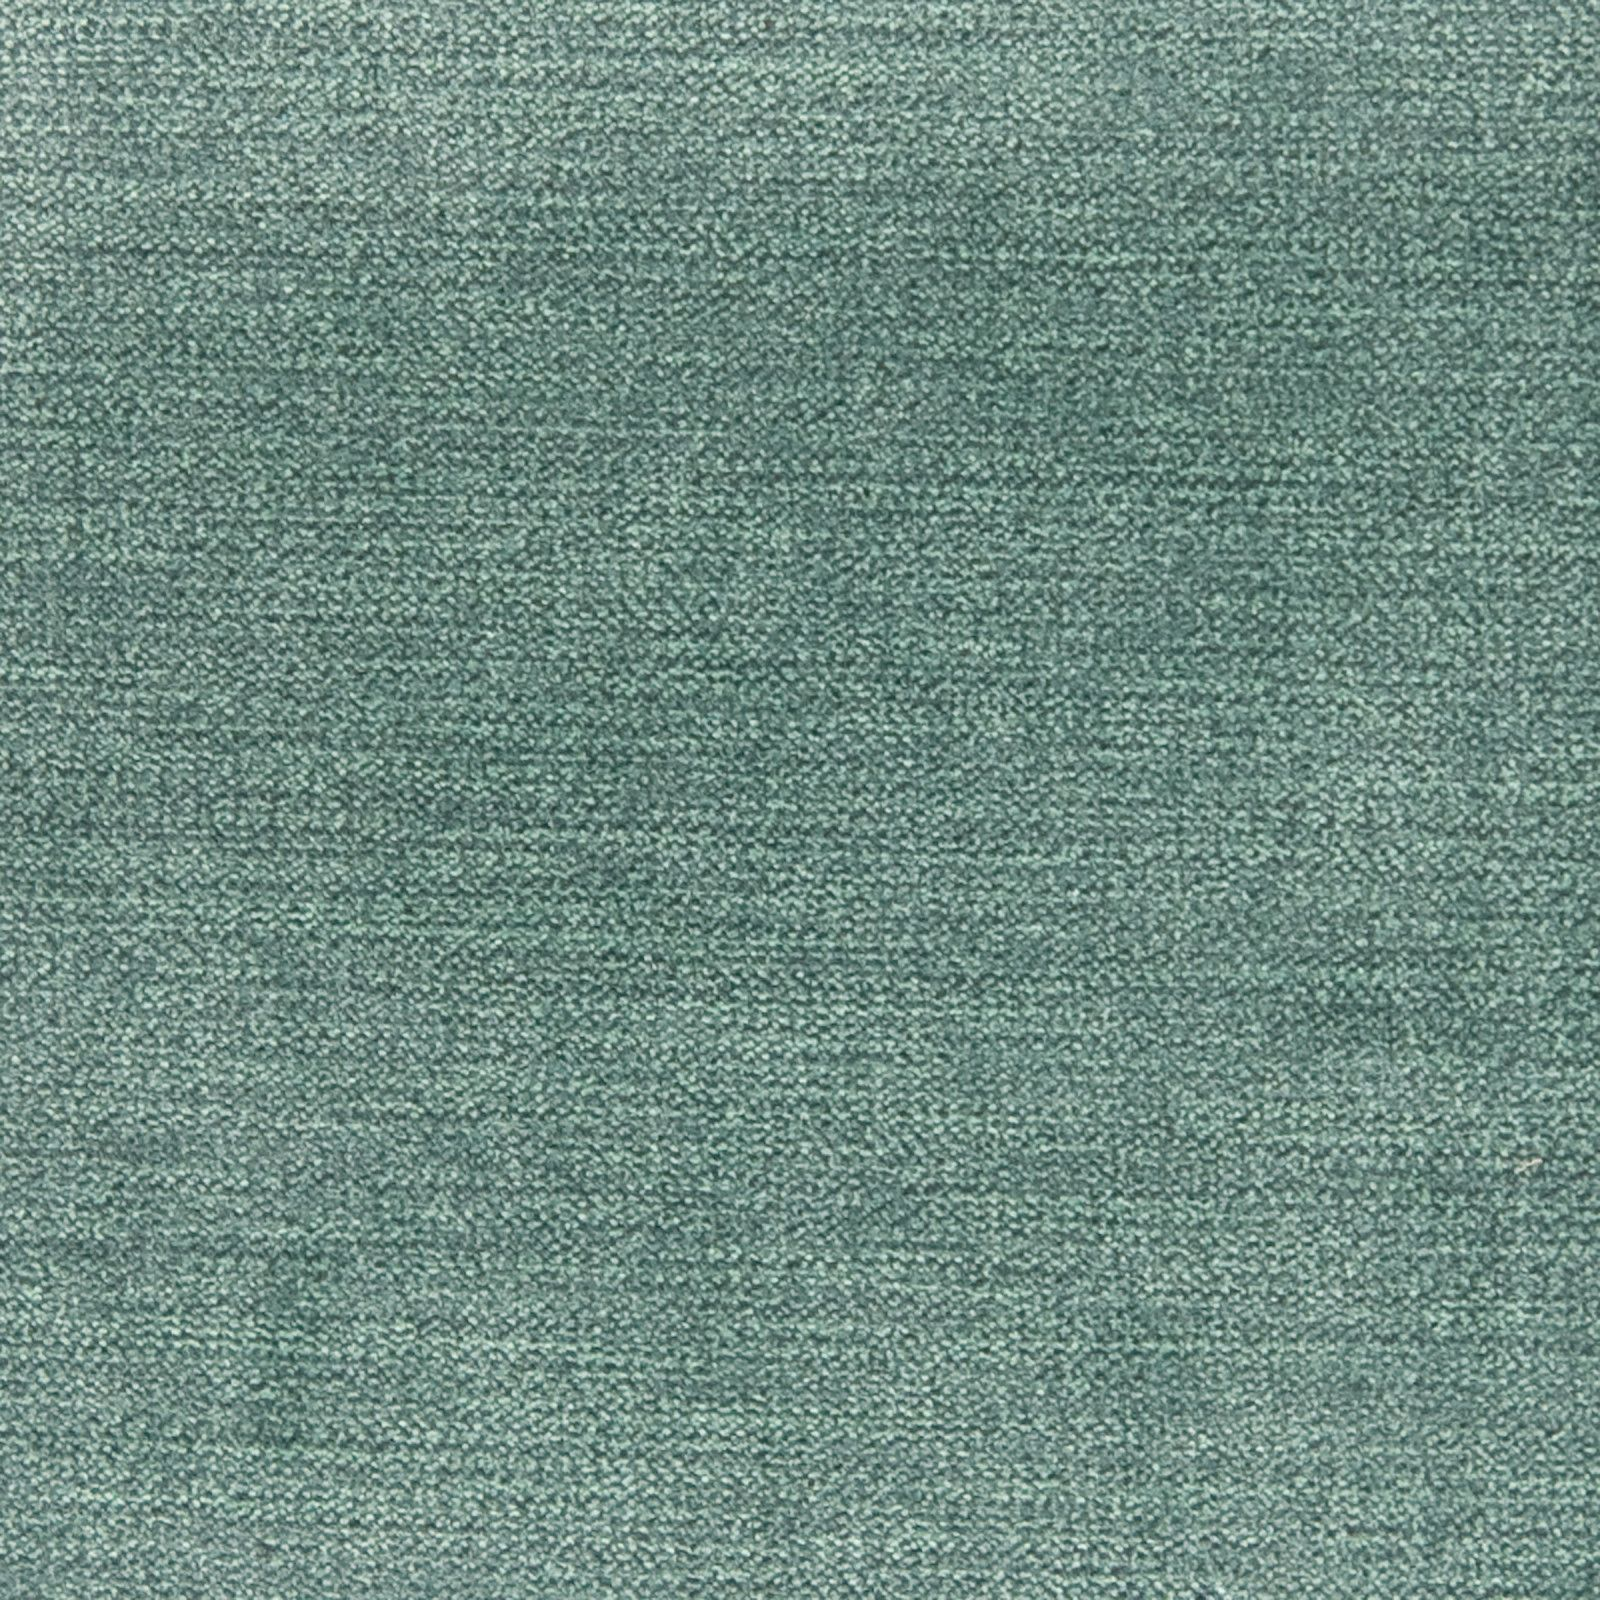 Teal And Blue Color Solid Pattern Velvet Type Upholstery Fabric Called G7840 Turquoise By Kovi Fabrics